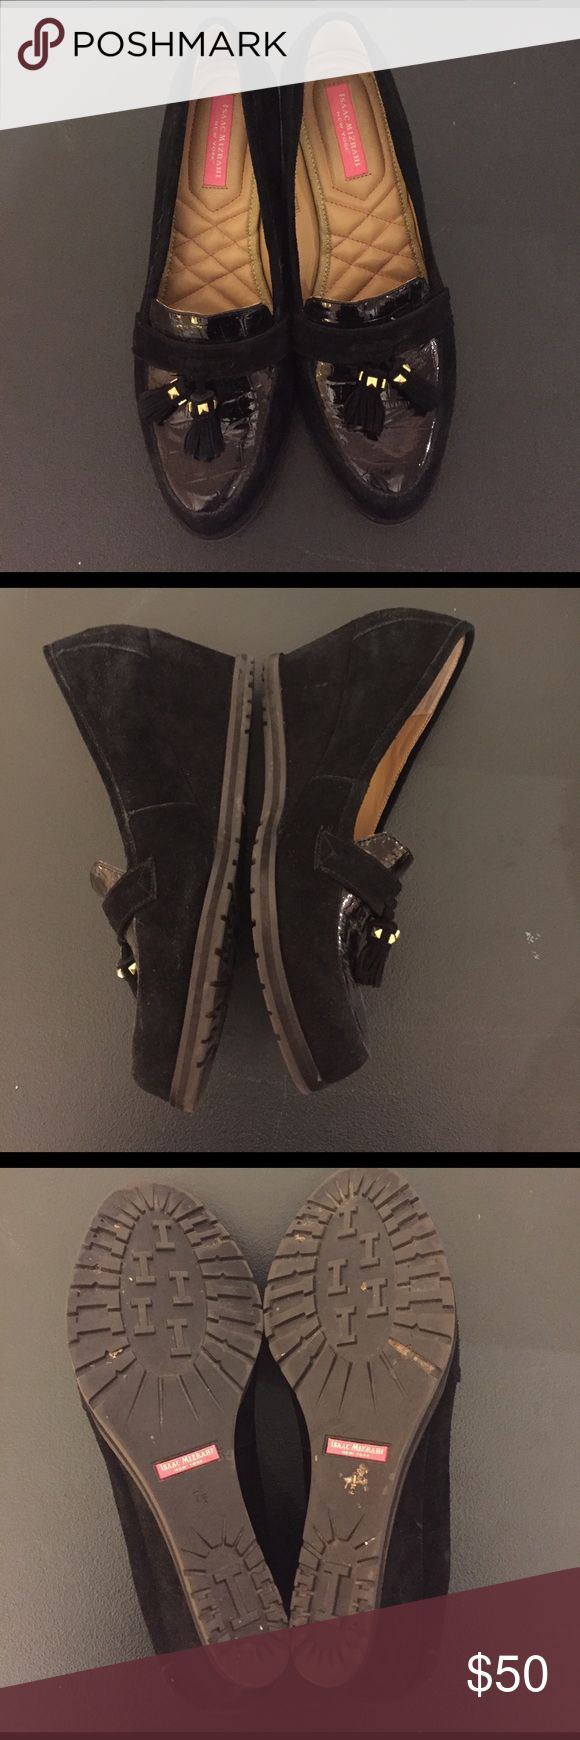 Isaac Mizrahi black suede loafers wedges. 7.5 EUC Isaac Mizrahi black loafers wedges. Suede with patent leather and tassels. Size 7.5. Excellent condition!! Isaac Mizrahi Shoes Wedges